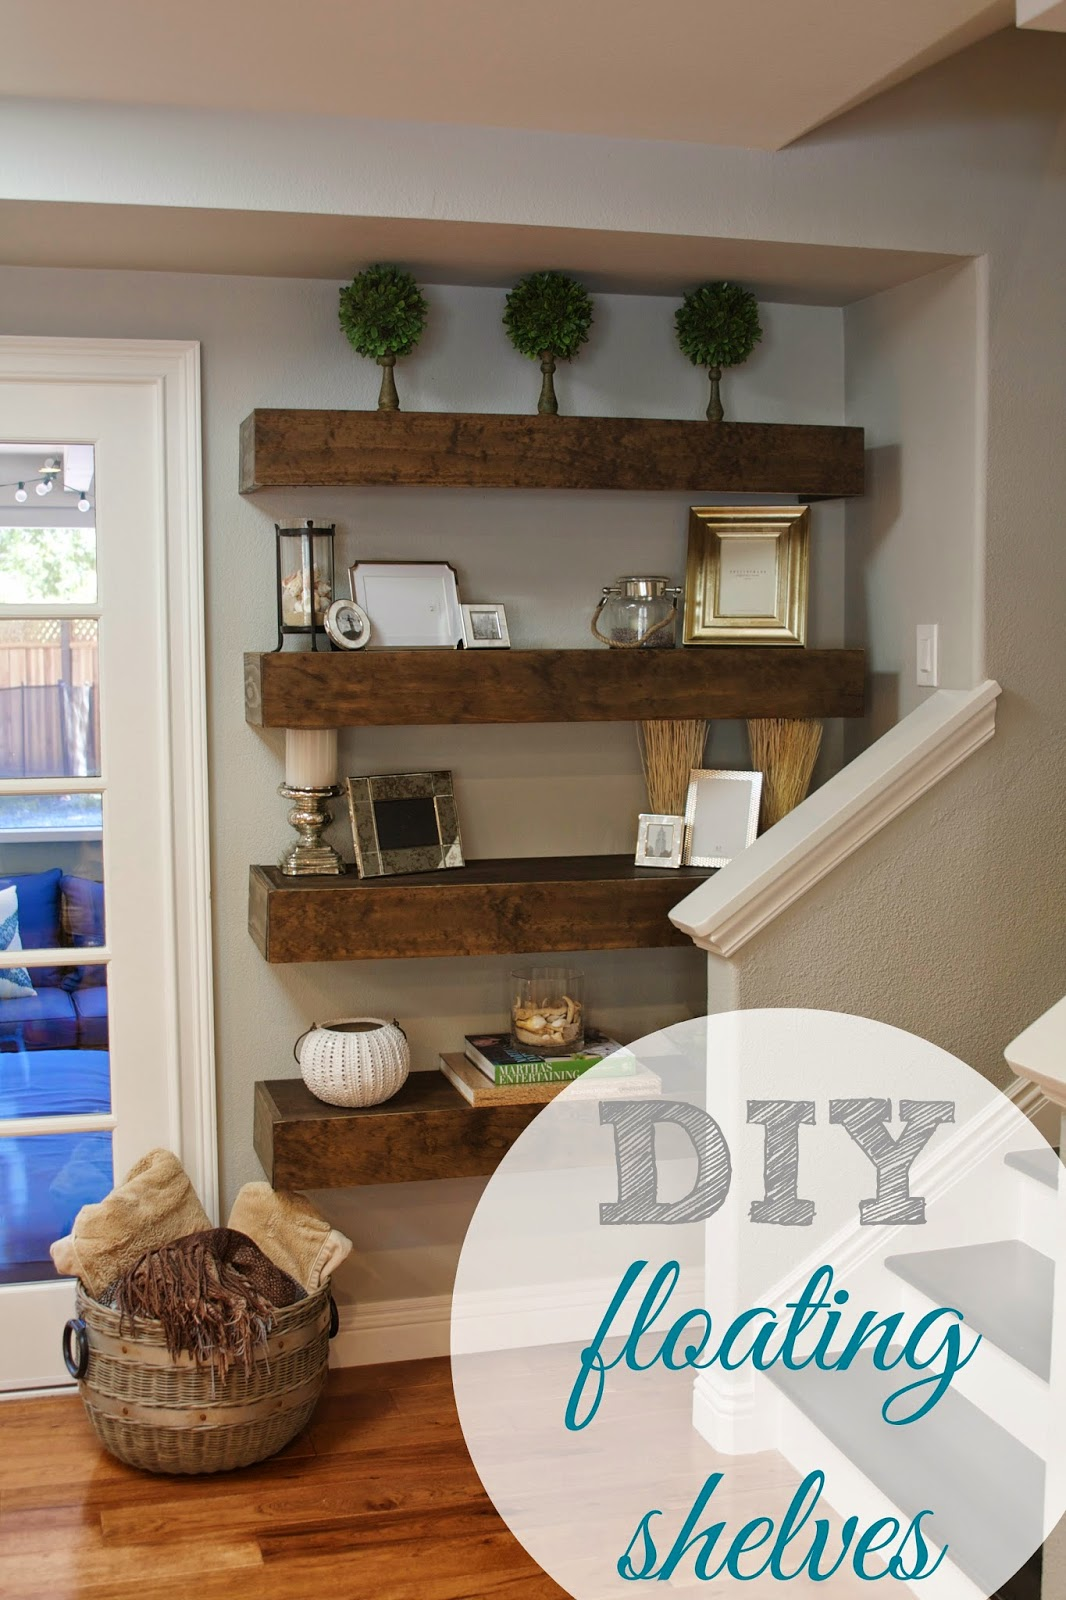 Simply organized simple diy floating shelves tutorial Decorative shelves ideas living room